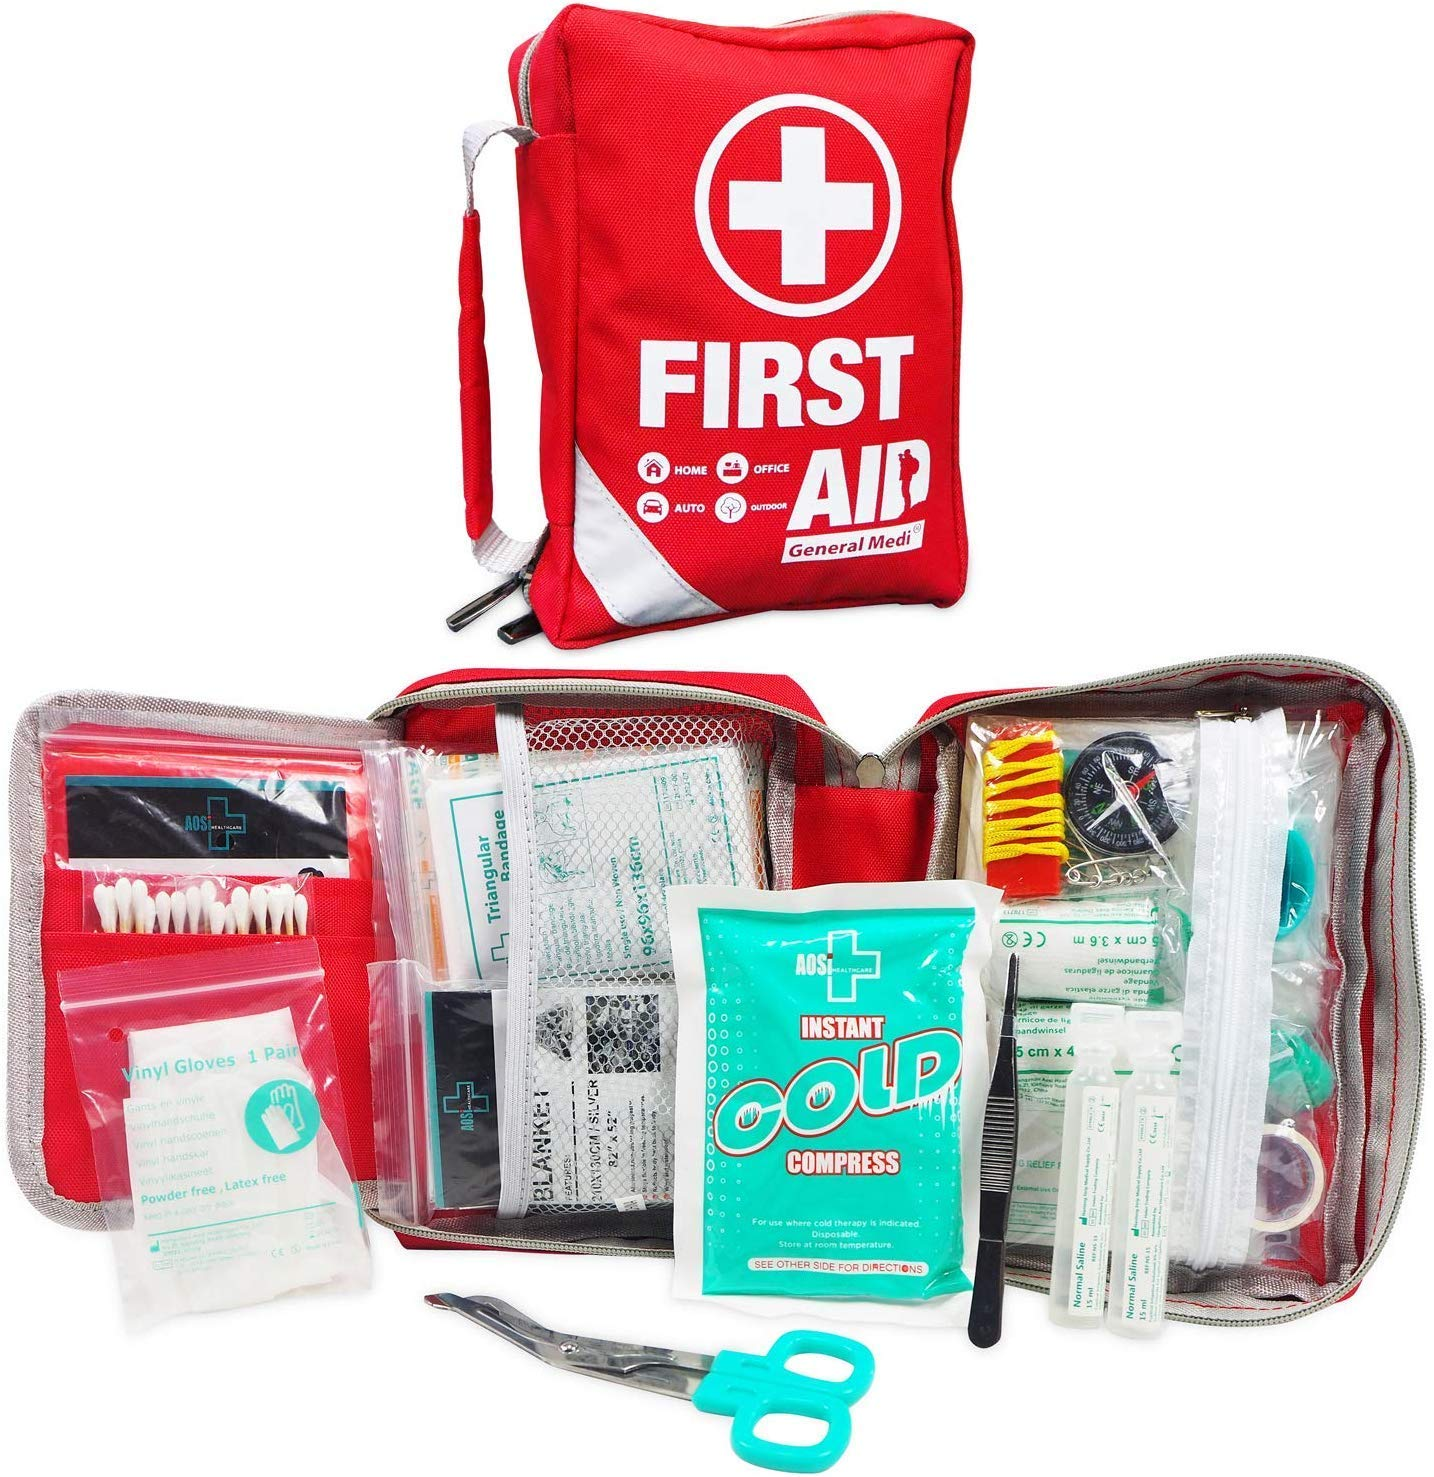 First Aid Kit - Small Compact First Aid Kit Bag